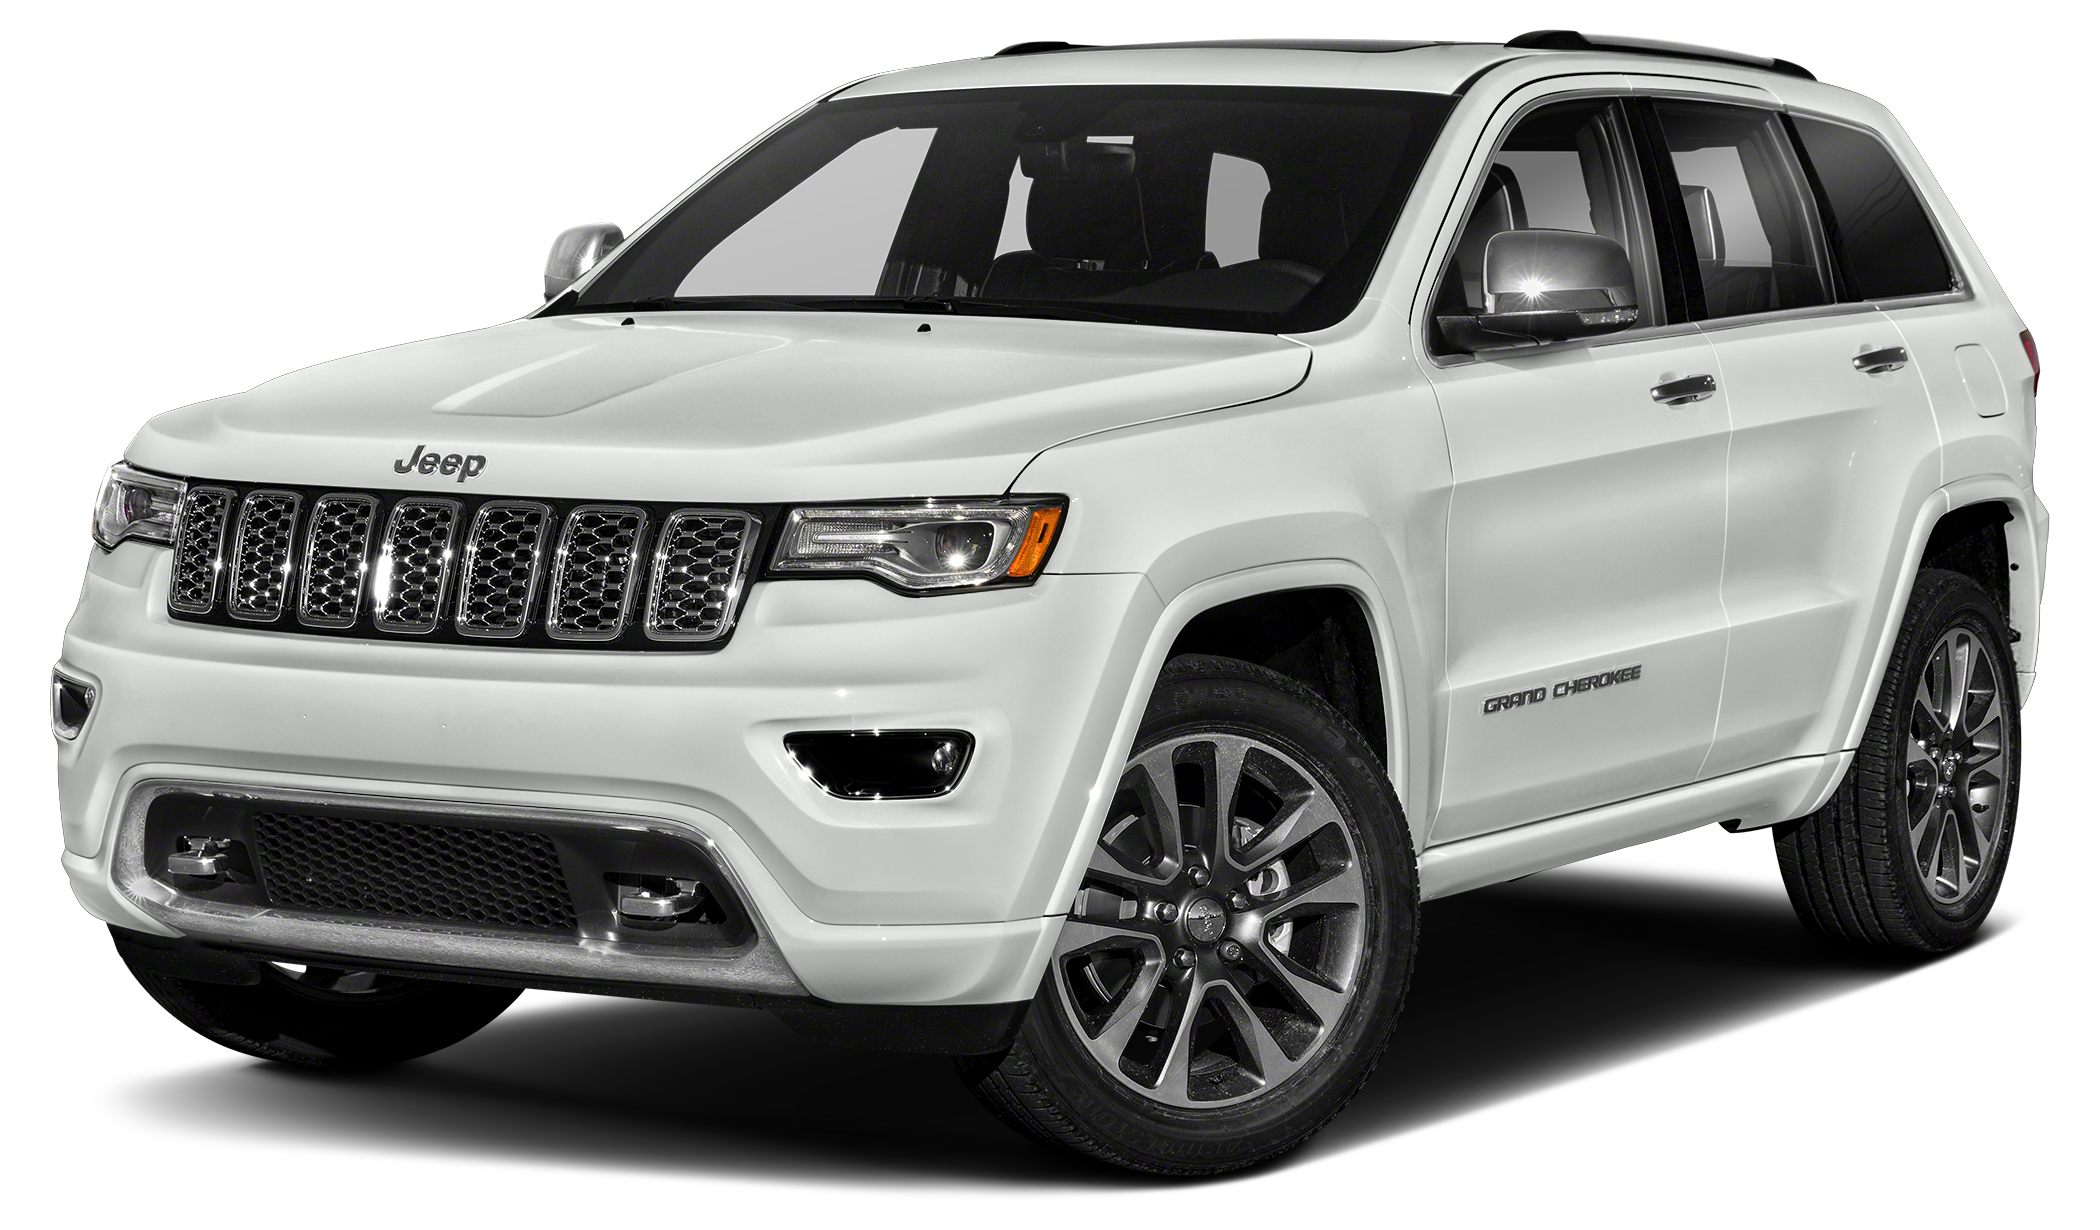 2017 Jeep Grand Cherokee Overland There is no better time than now to buy this smooth Overland re